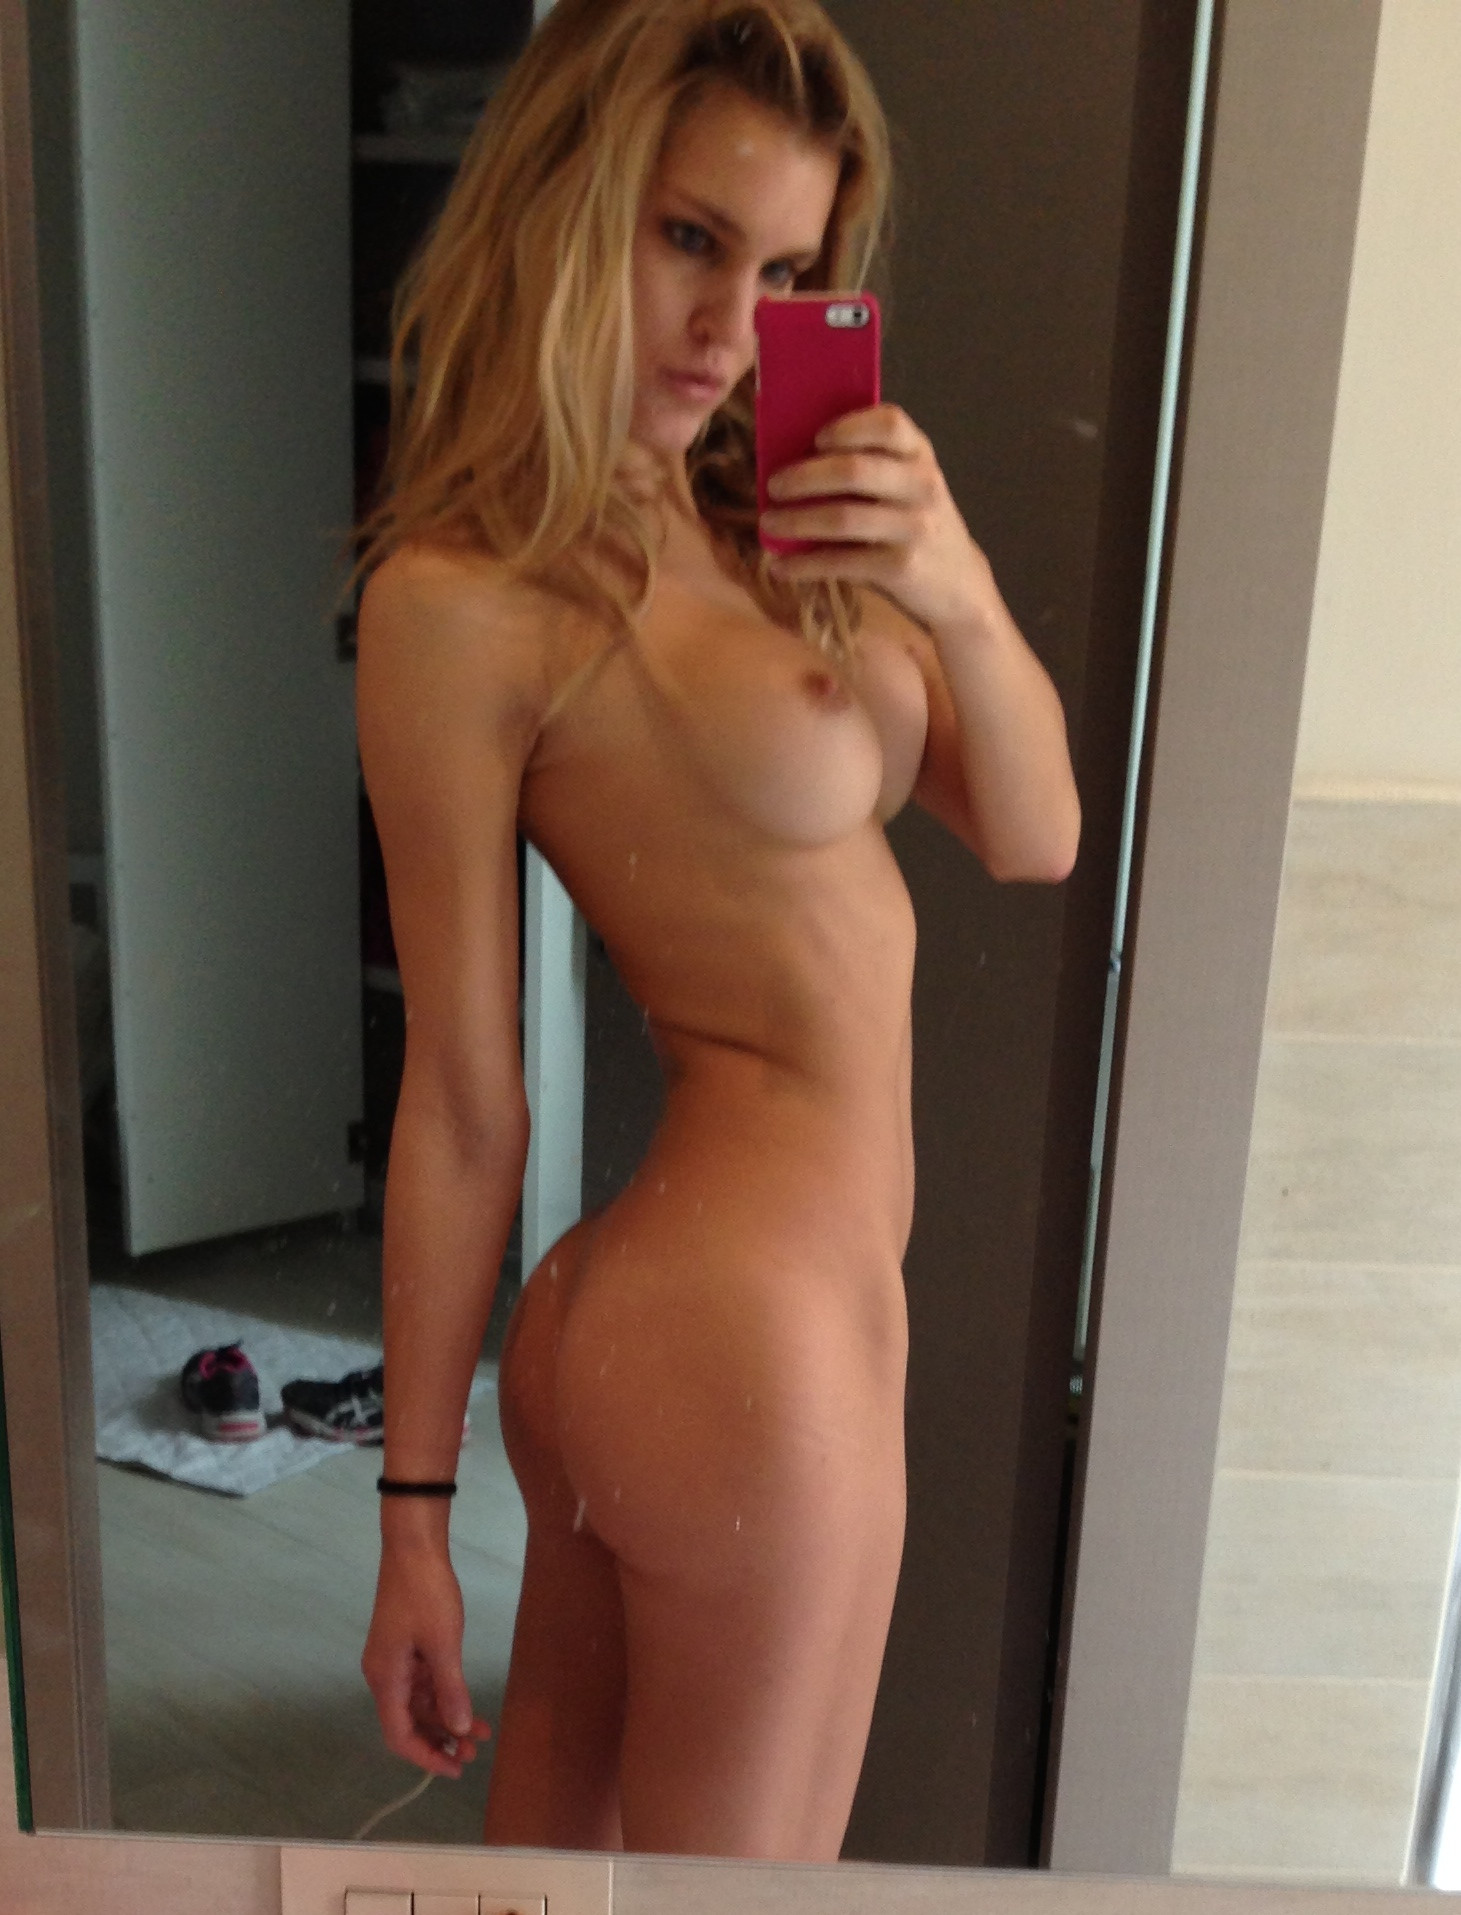 Best leaked nude photos ever 4